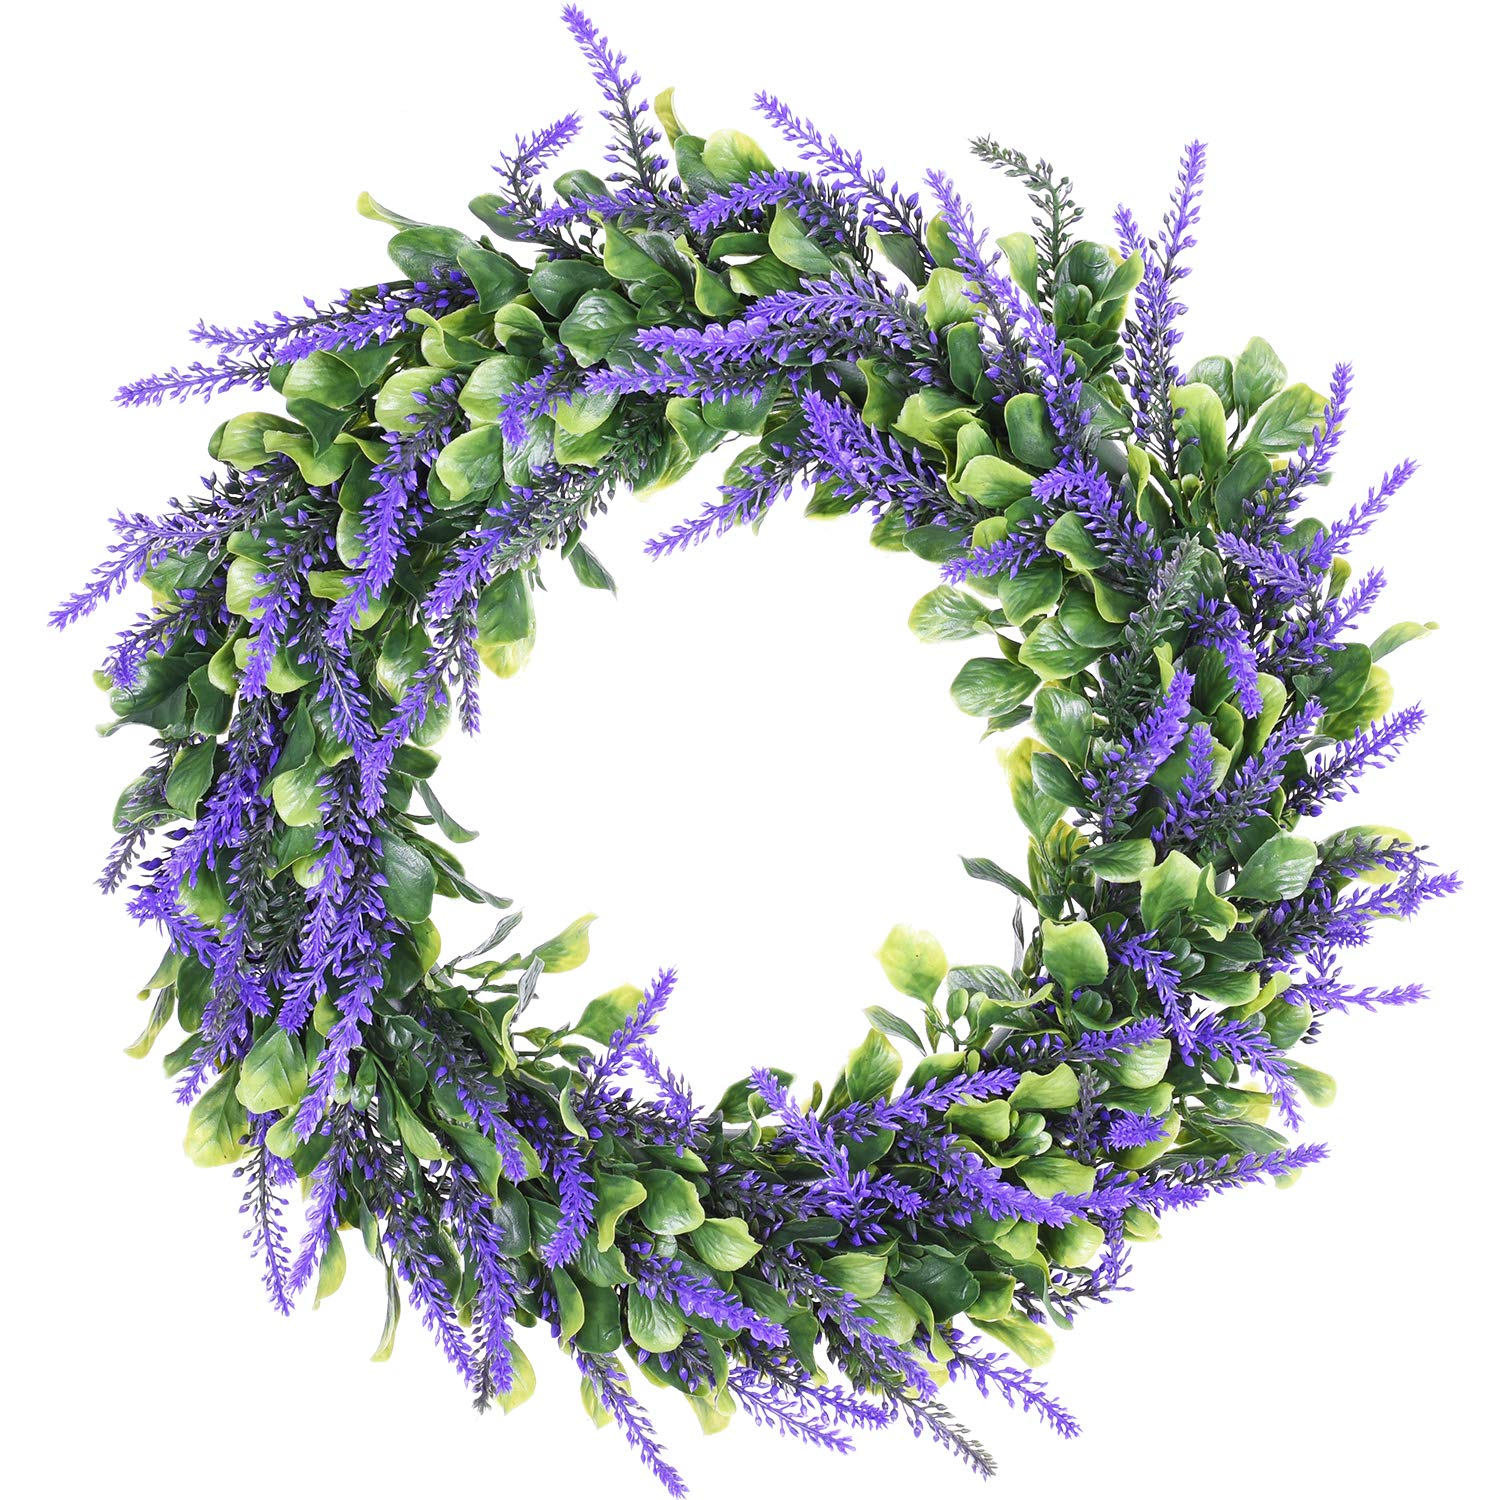 Lvydec Artificial Lavender Wreath, 15'' Green Leaves Boxwood Wreath with Lavender for The Front Door, Wall, Home Décor